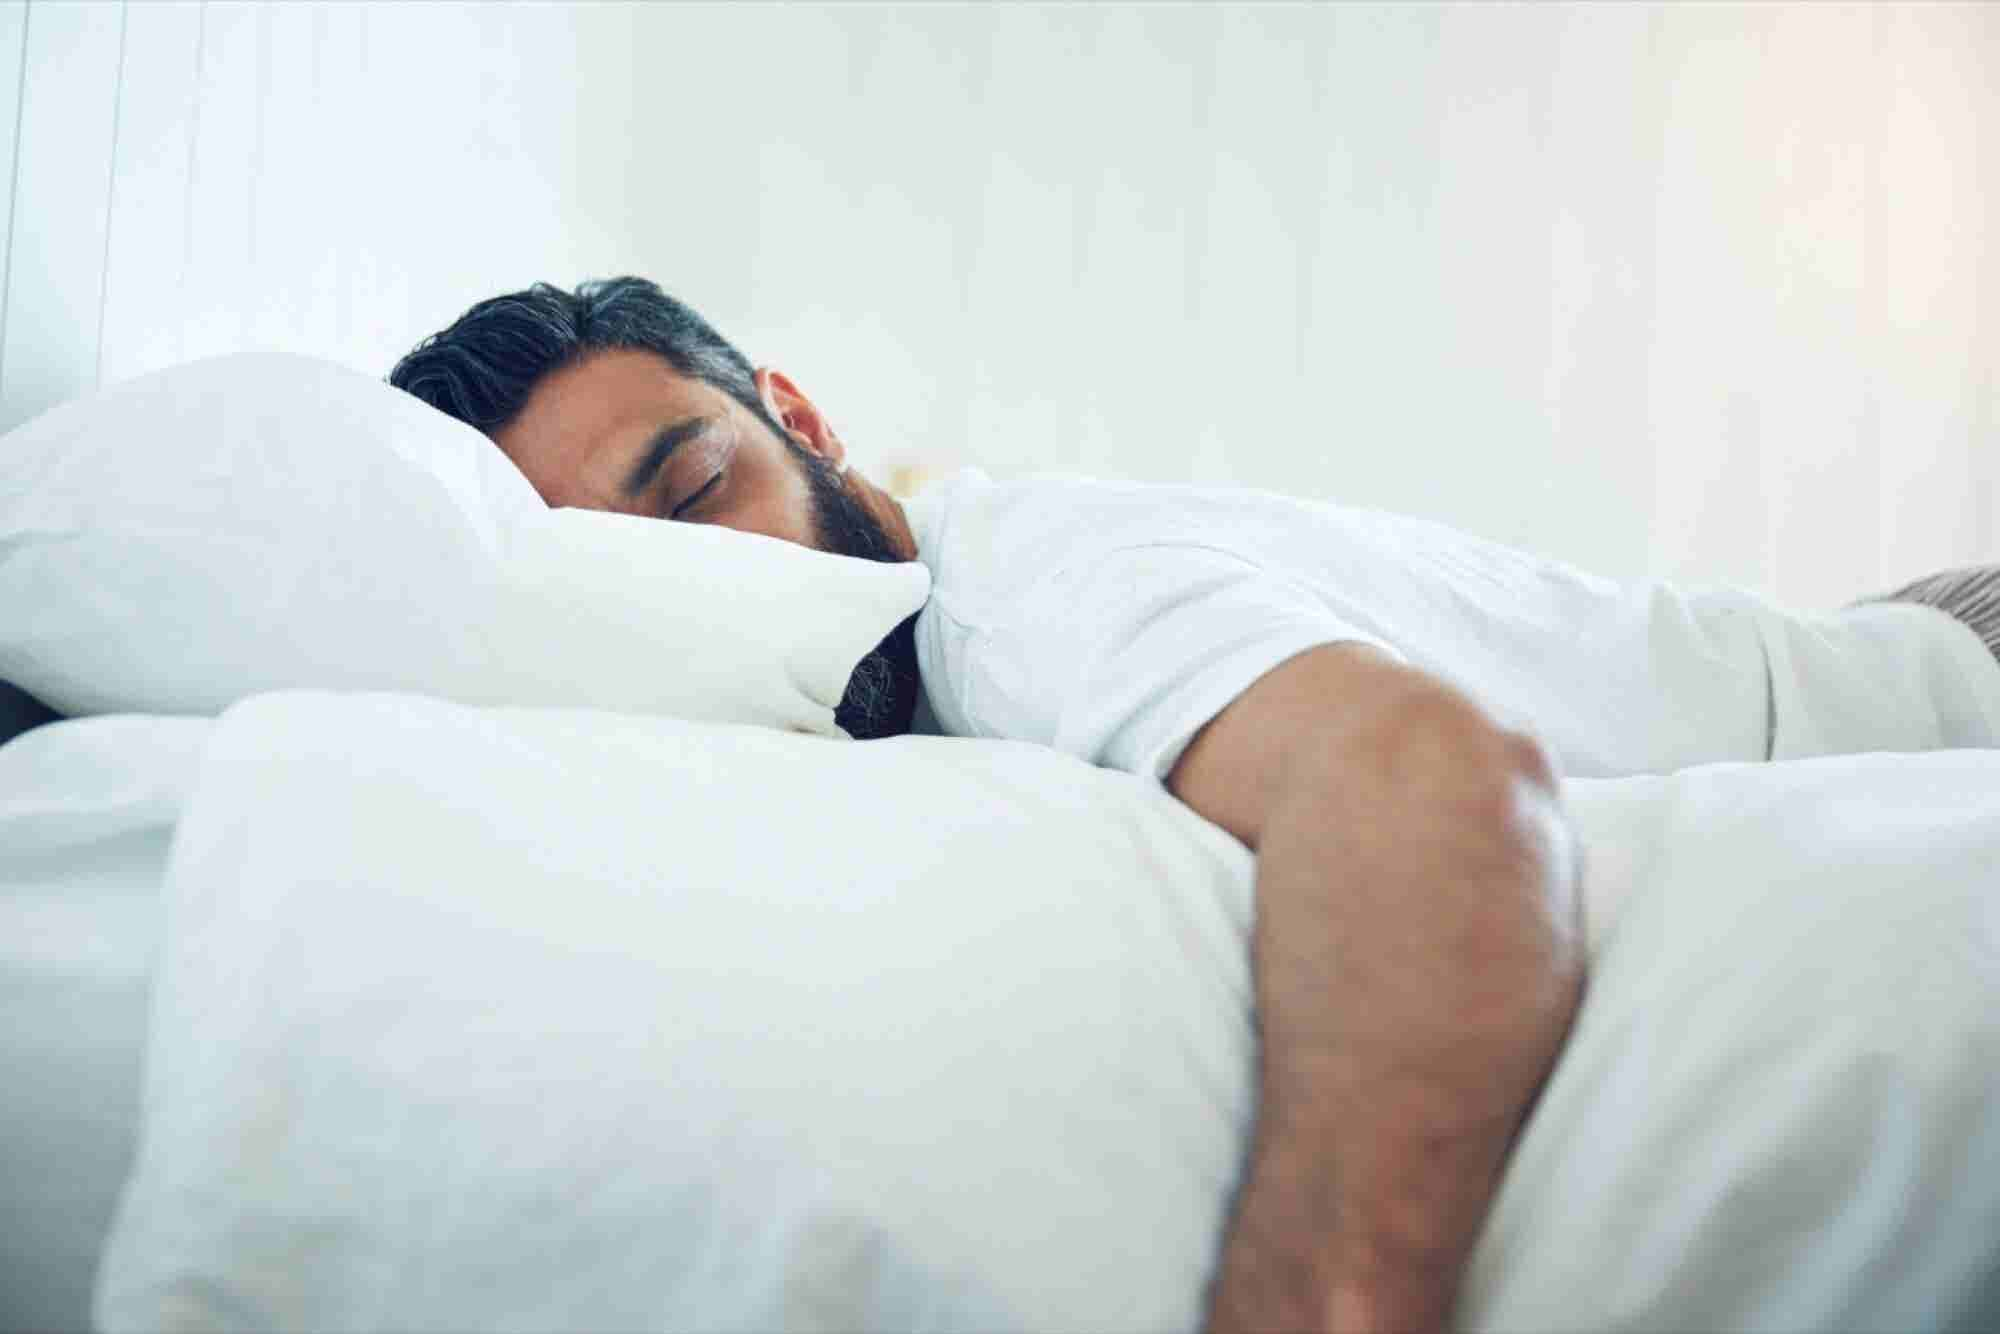 Want to Maximize Your Sleep? Use This Nap Entrepreneur's 5 Top Tips.